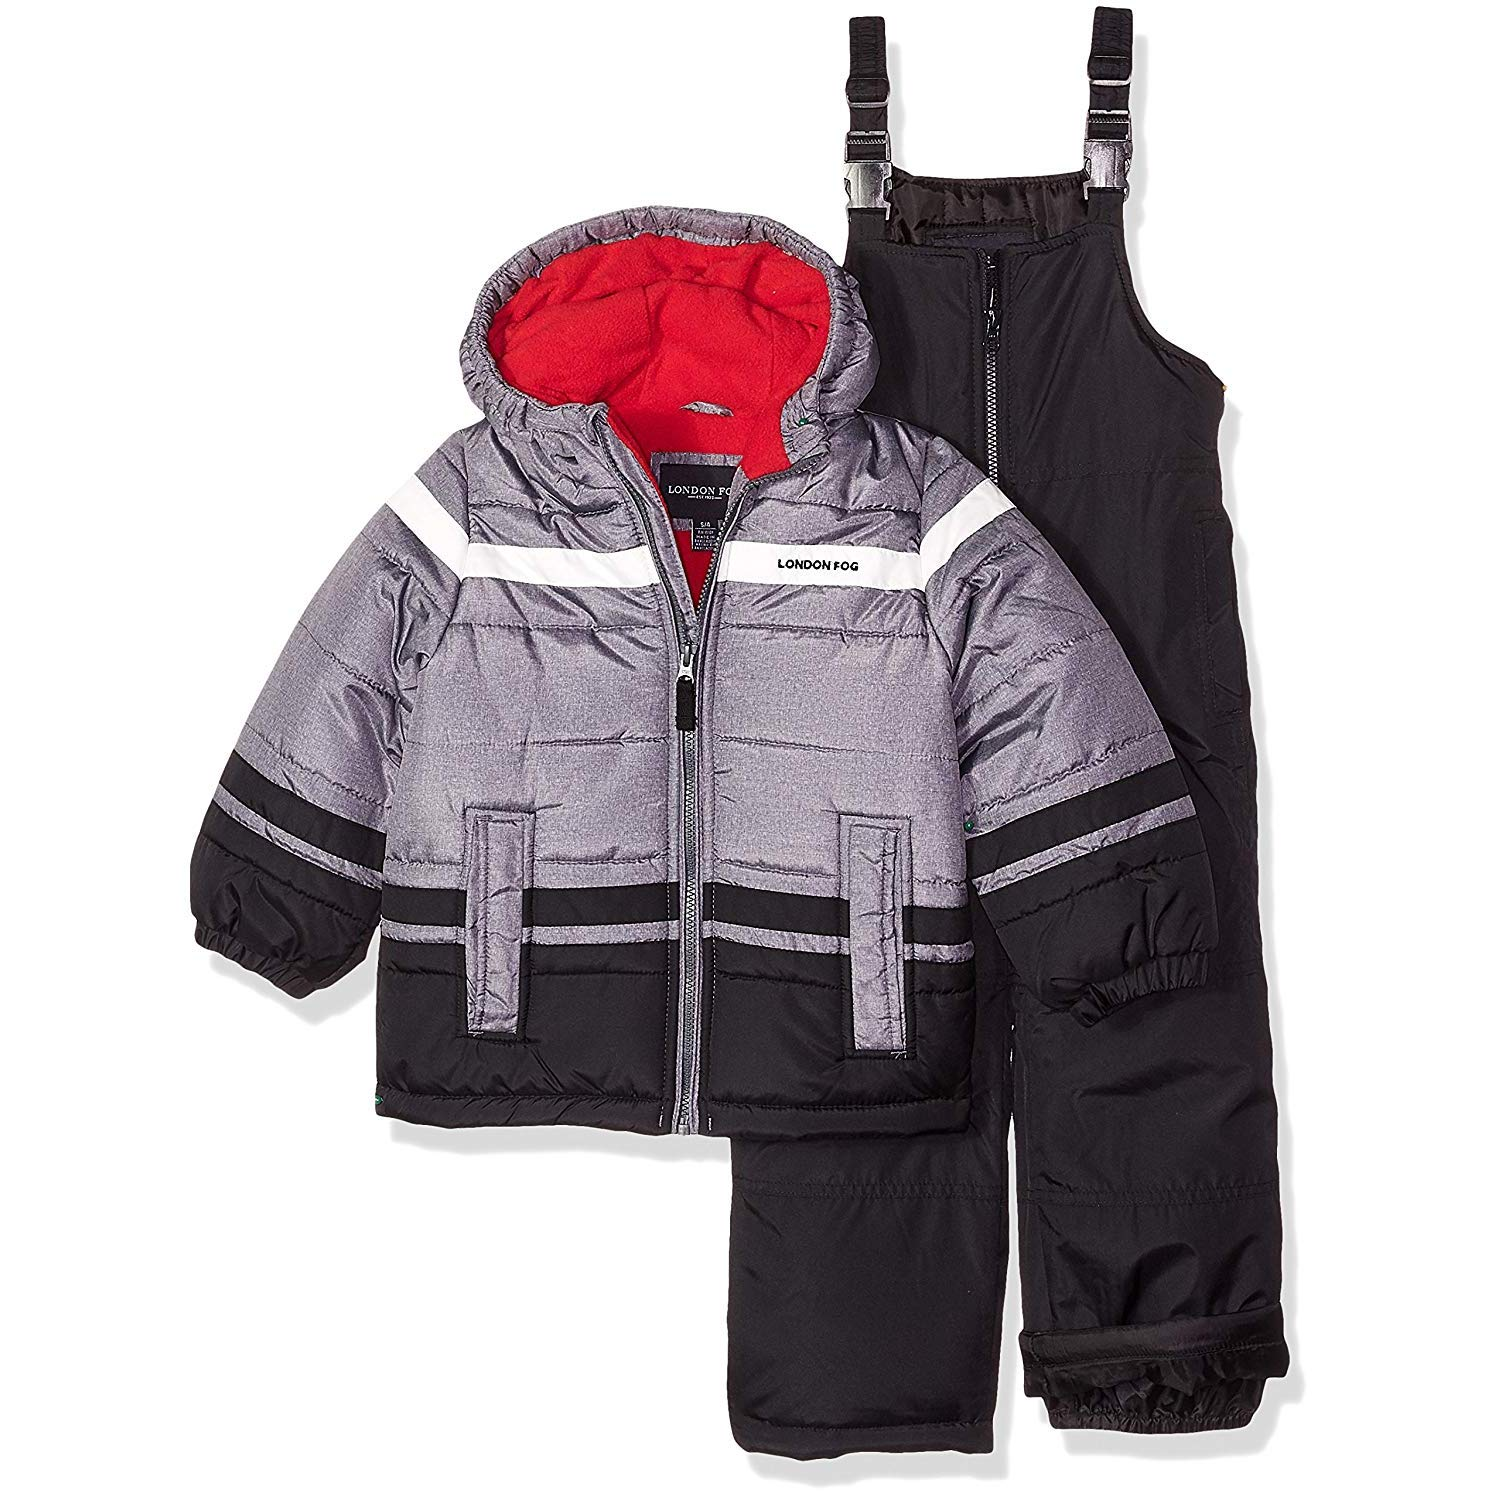 London Fog Boys' Little' 2-Piece Snow Pant & Jacket Snowsuit, Black Print/red pop, 4